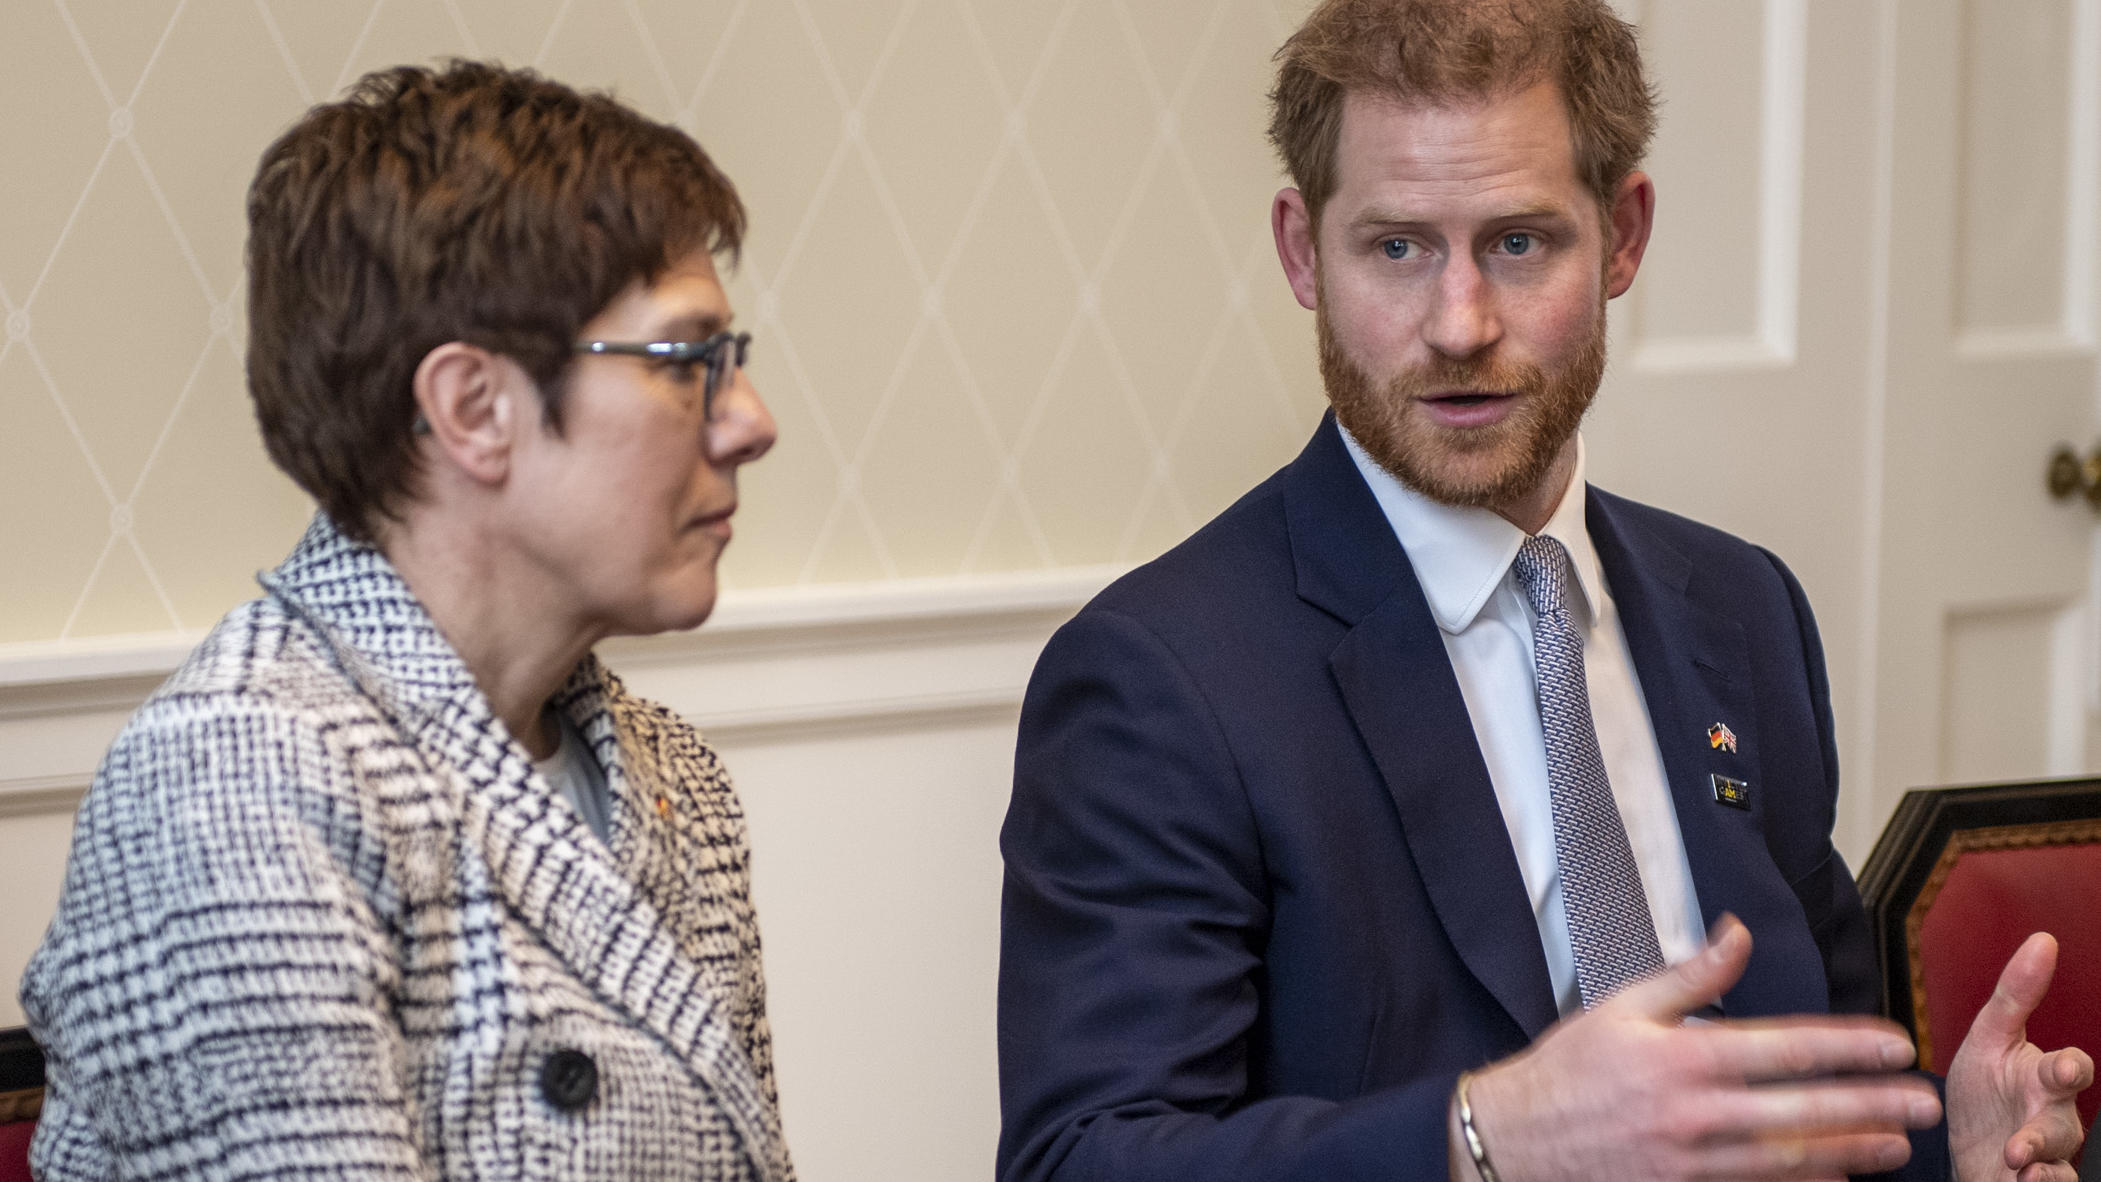 Annegret Kramp-Karrenbauer trifft Prinz Harry in London. (Quelle: Invictus Games)